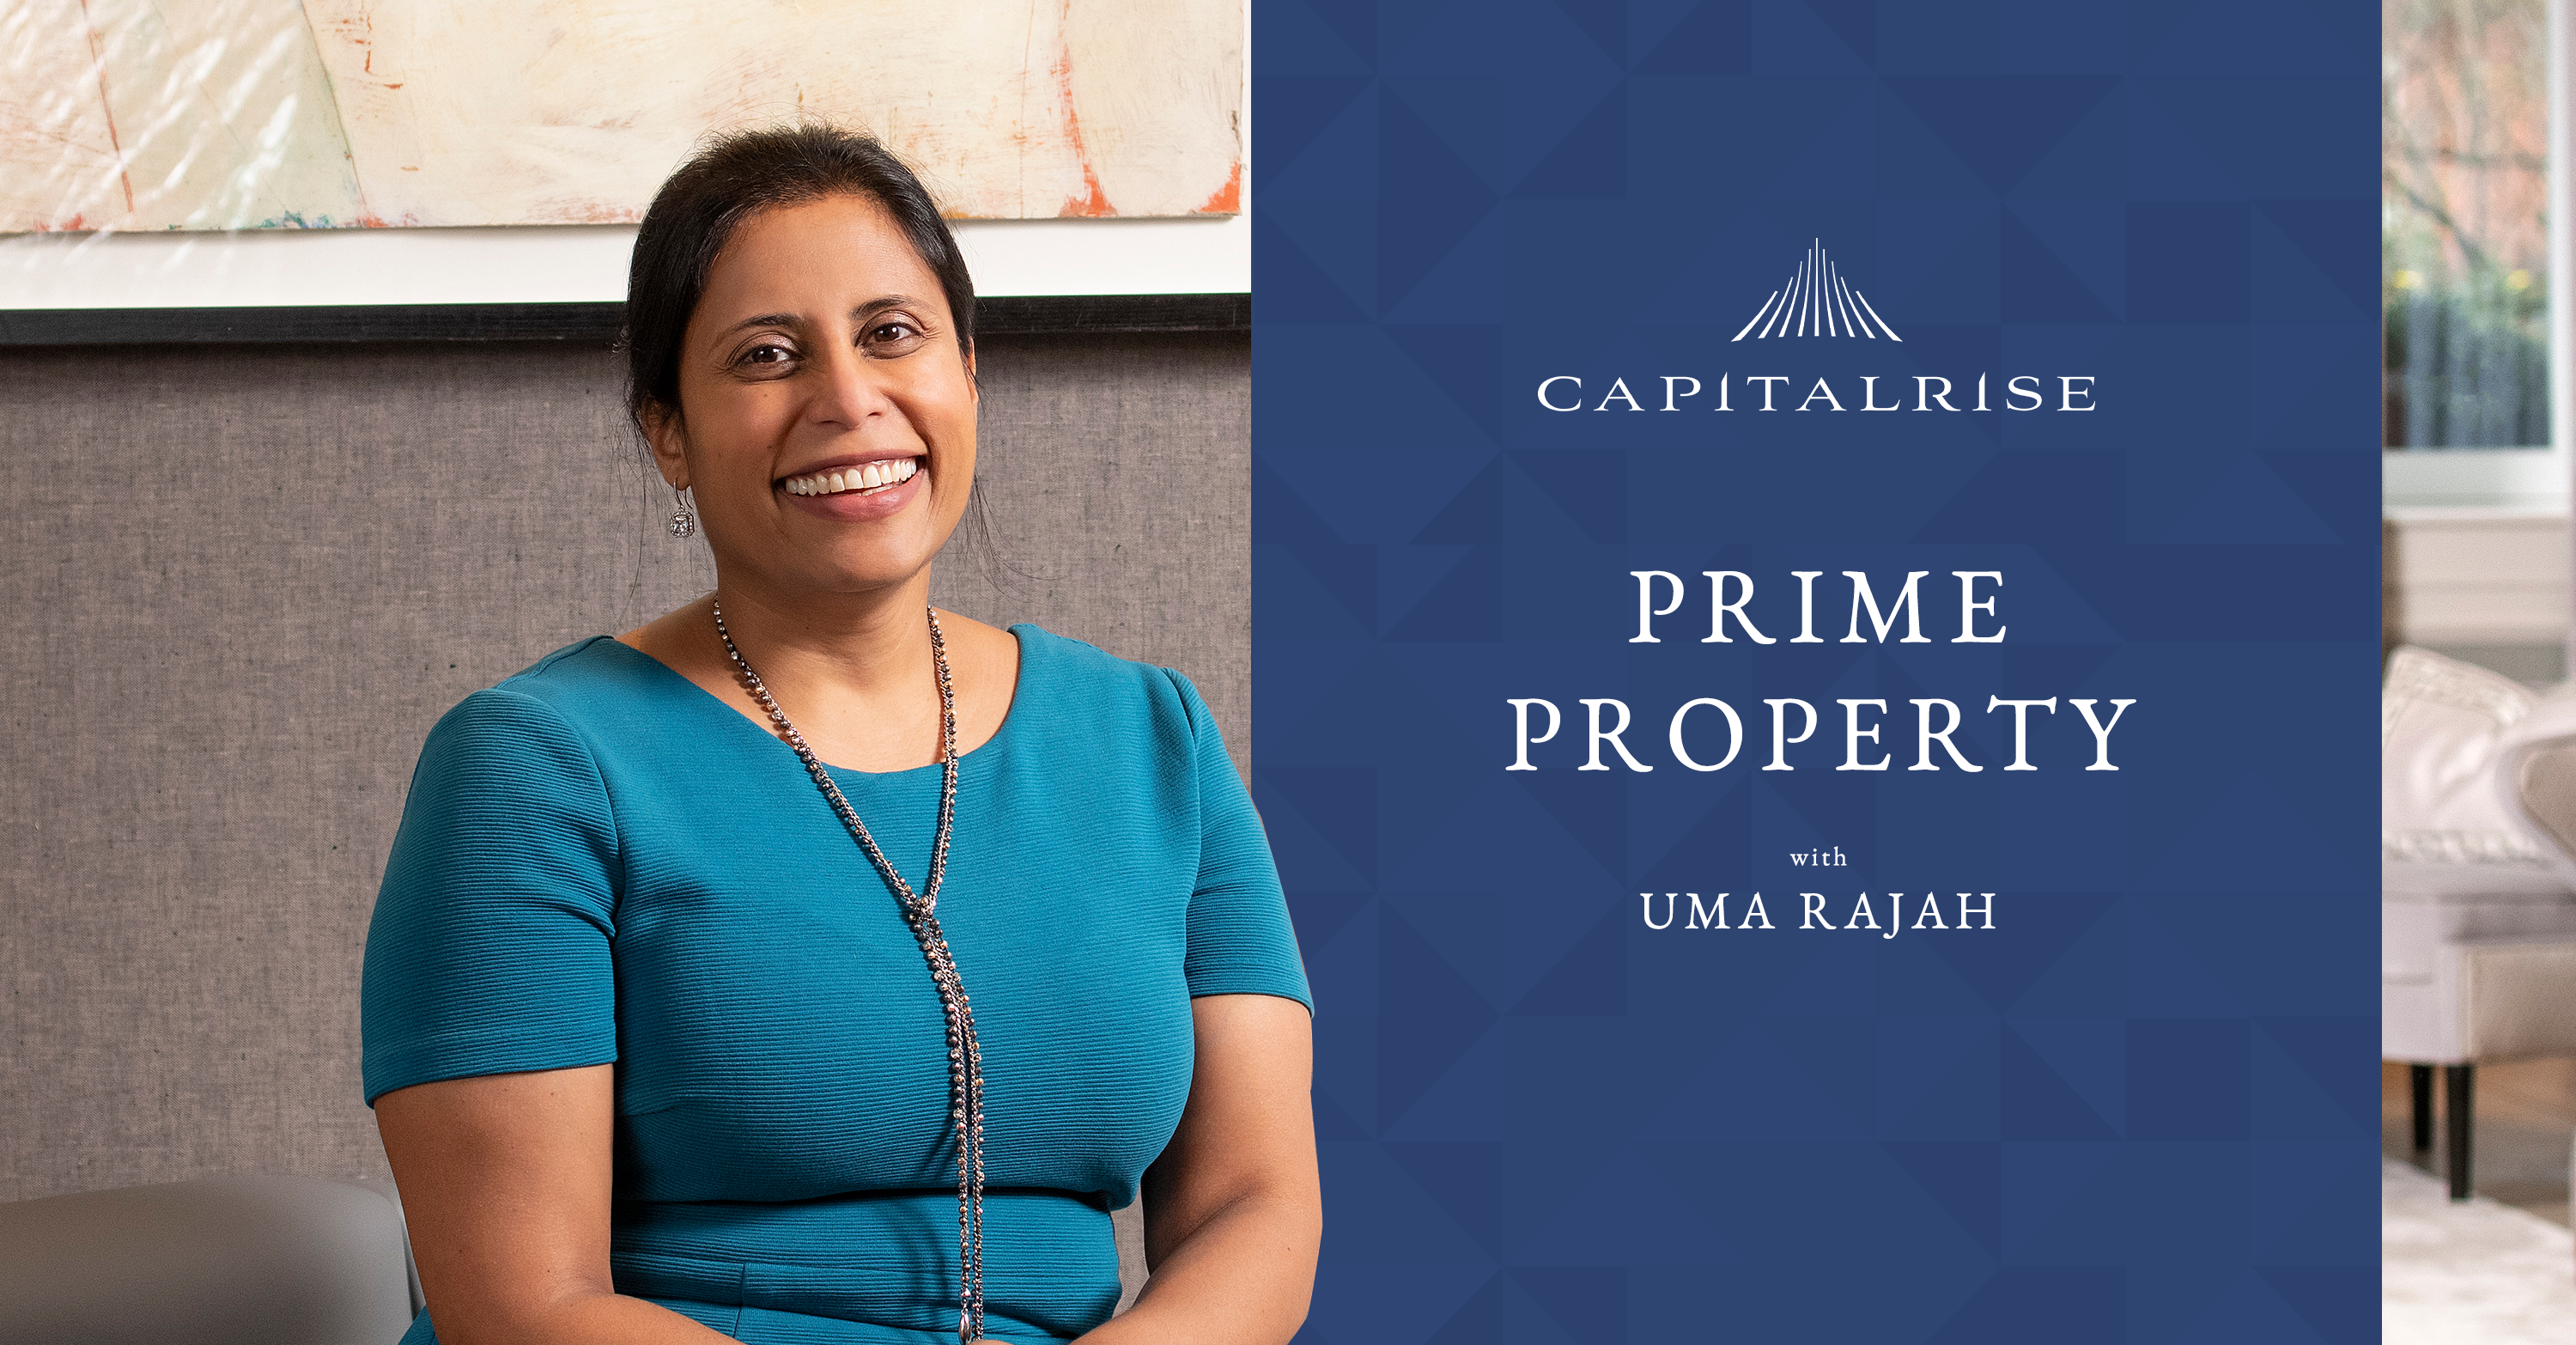 Prime Property with Uma Rajah – launching our insightful new podcast